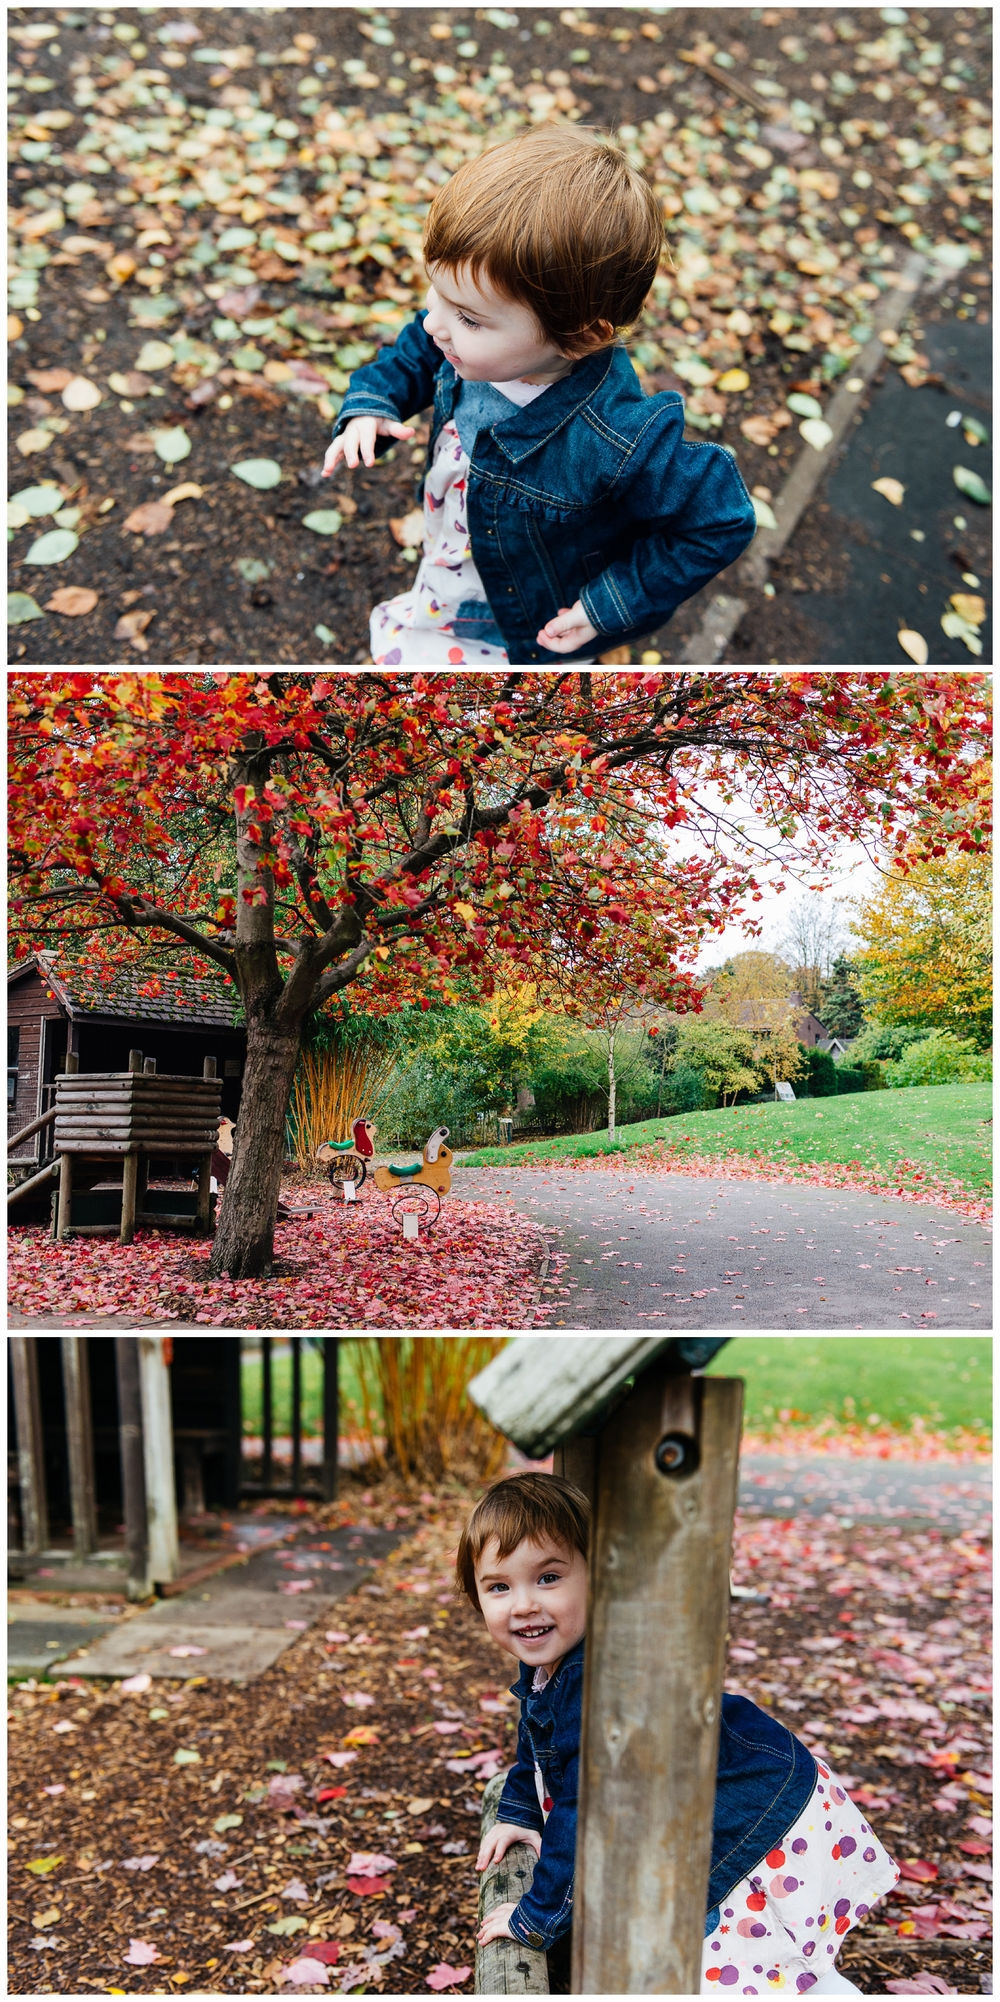 Autumn-family-portraits-birmingham-photographer_0005.jpg